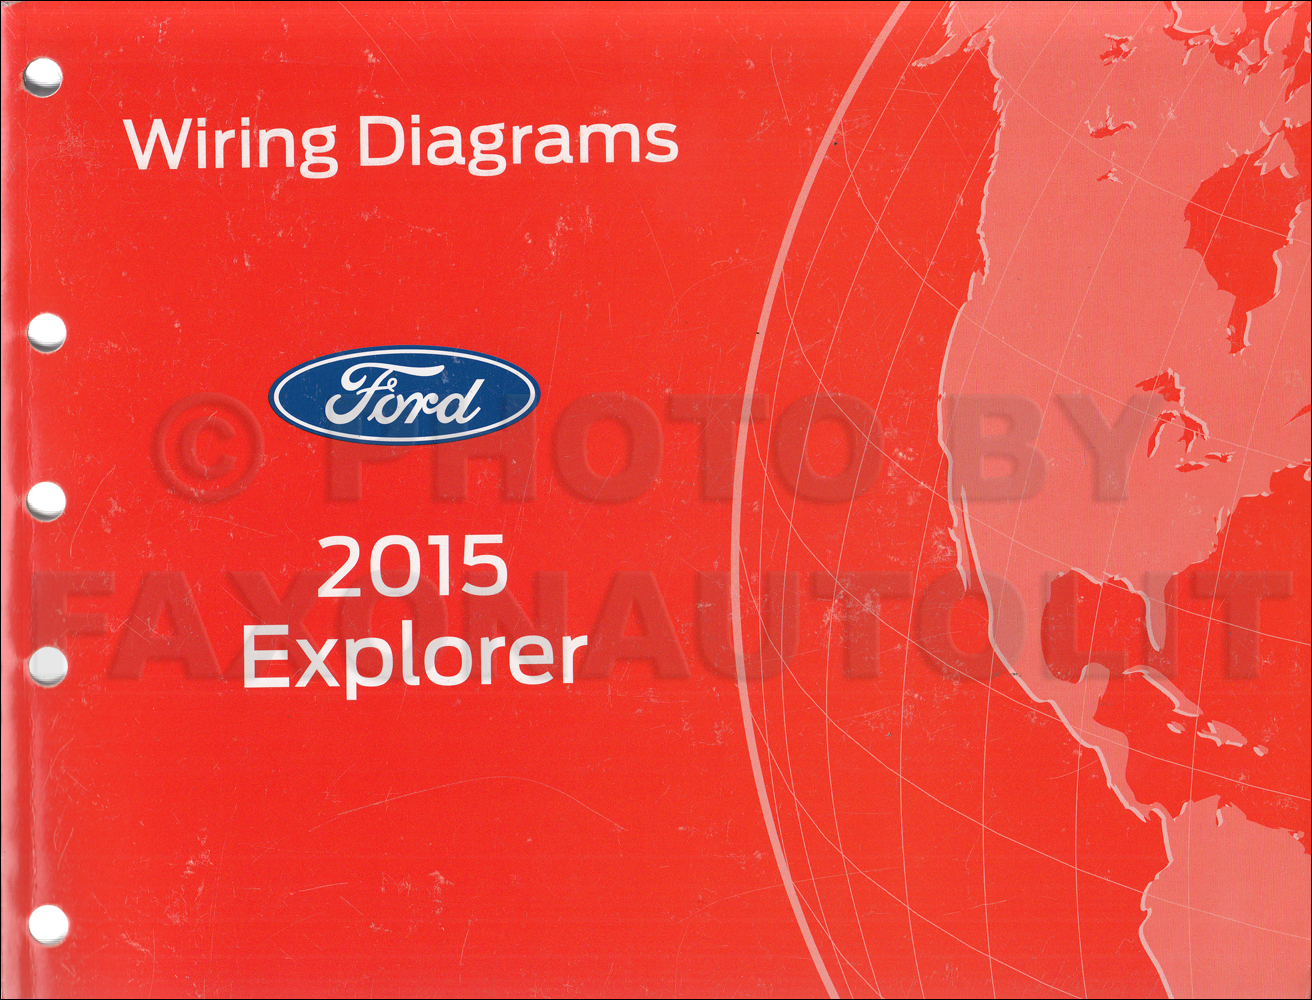 2015 Ford Explorer Wiring Diagram Manual Original | 2015 Ford Explorer Wiring Diagrams |  | Faxon Auto Literature